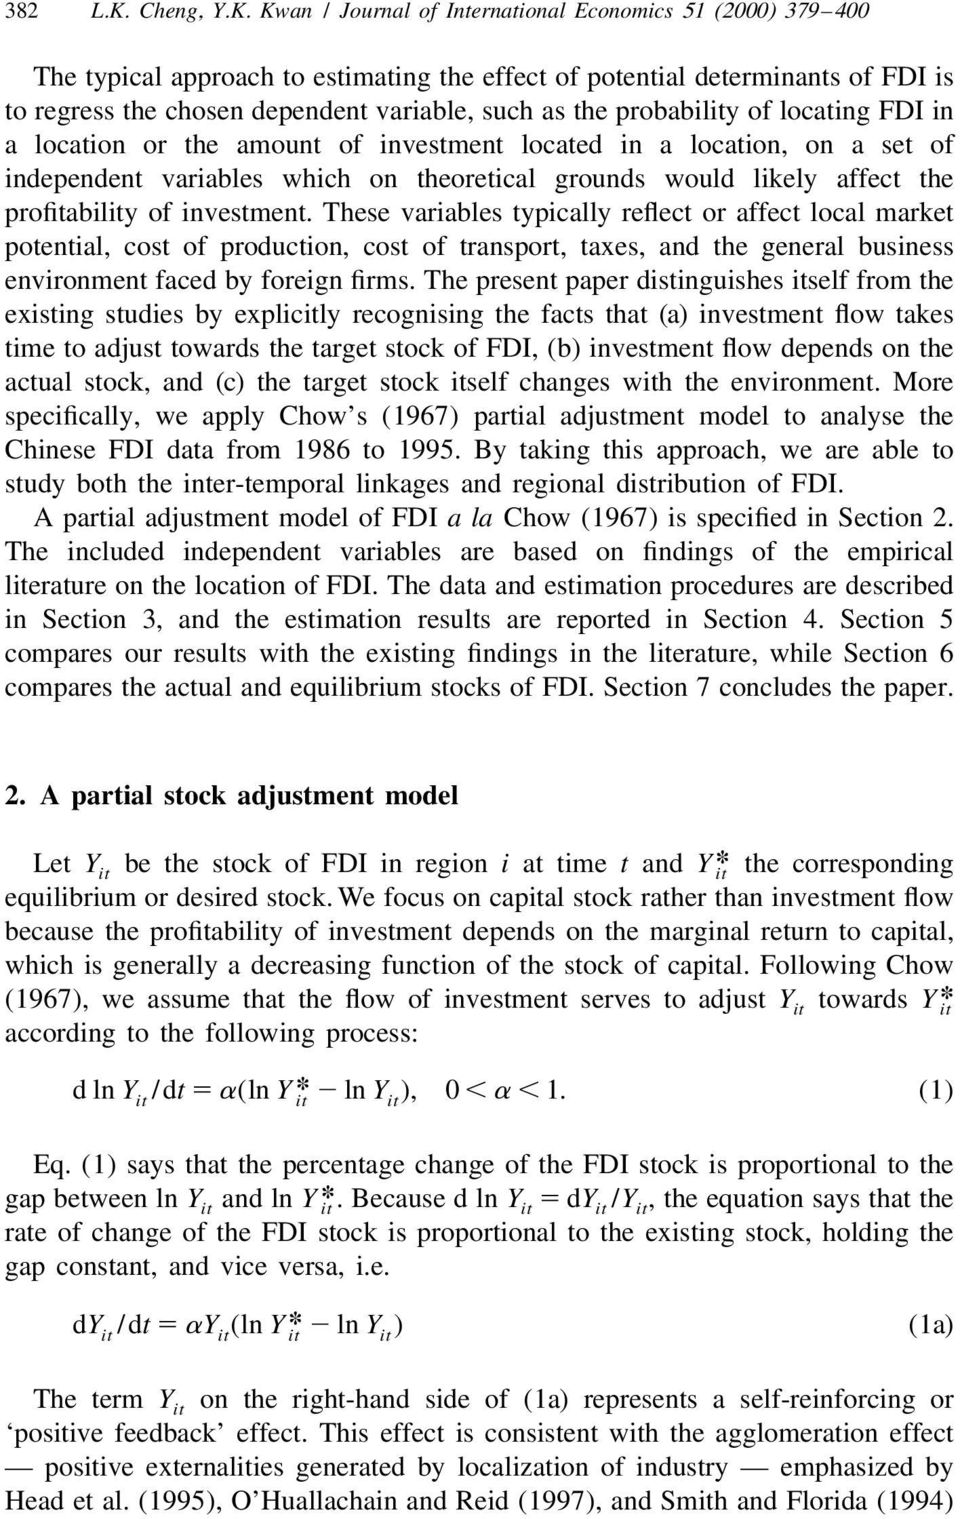 Kwan / Journal of International Economics 51 (2000) 379 400 The typical approach to estimating the effect of potential determinants of FDI is to regress the chosen dependent variable, such as the